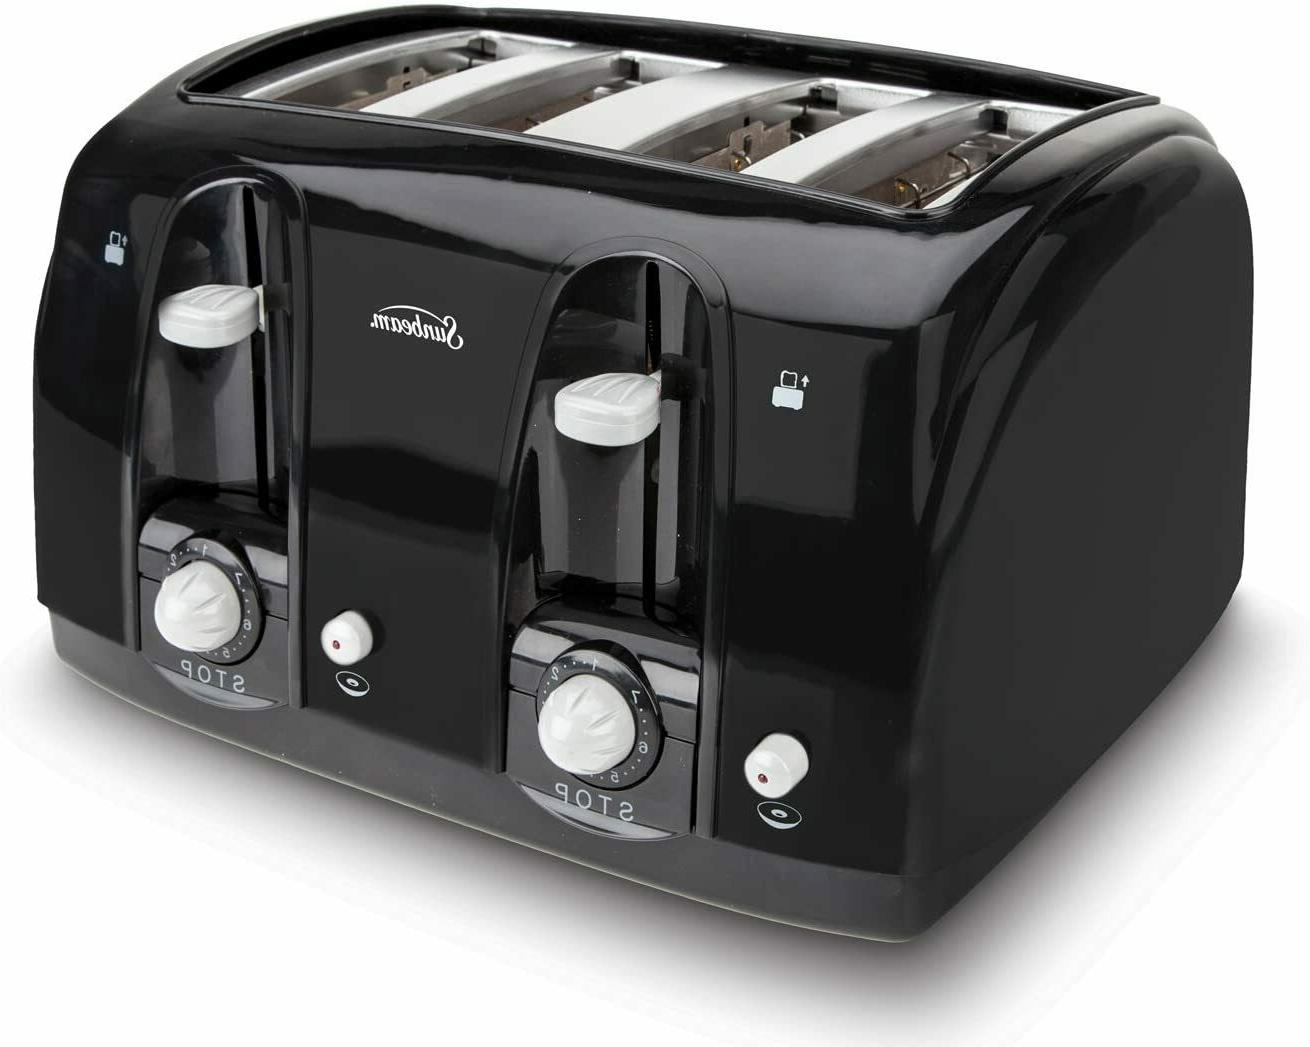 Extra Wide Slot Toaster 7 Settings